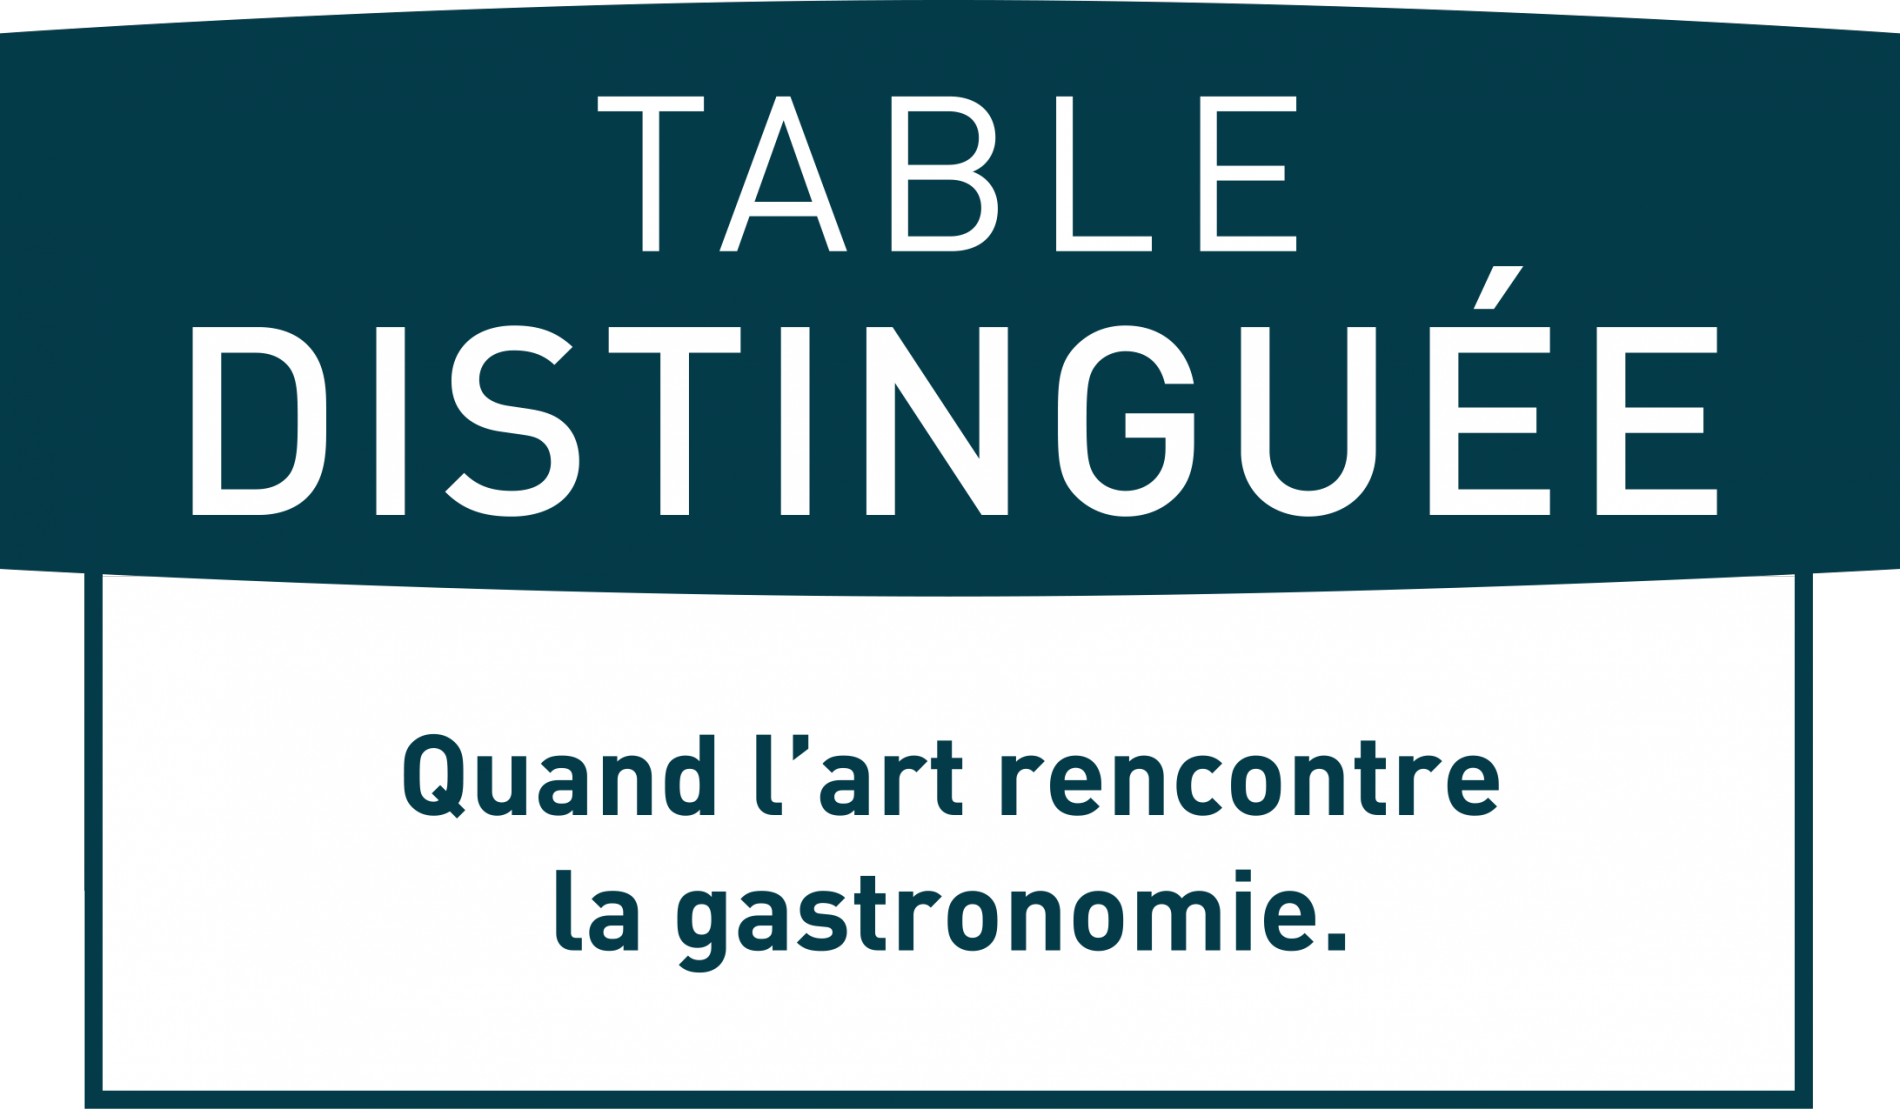 Logis Restaurant Table Distinguée Le Lucullus